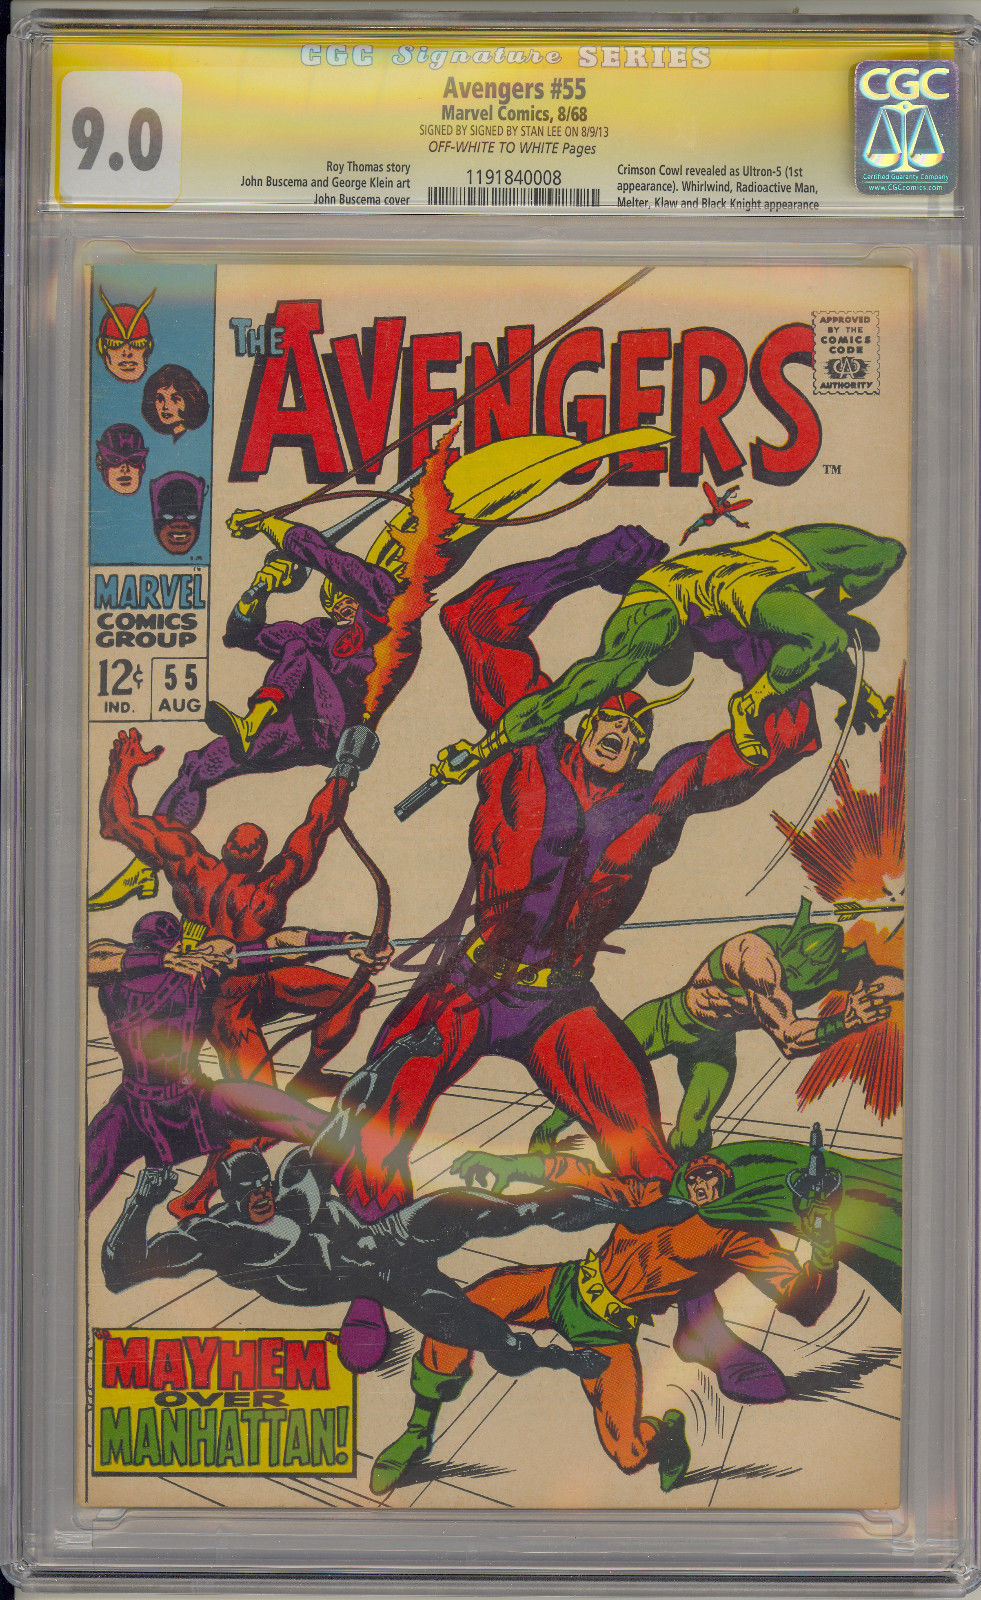 AVENGERS #55 CGC 9.0 OW/W 1ST ULTRON STAN LEE SS (SIGNED) MARVEL COMICS 1968